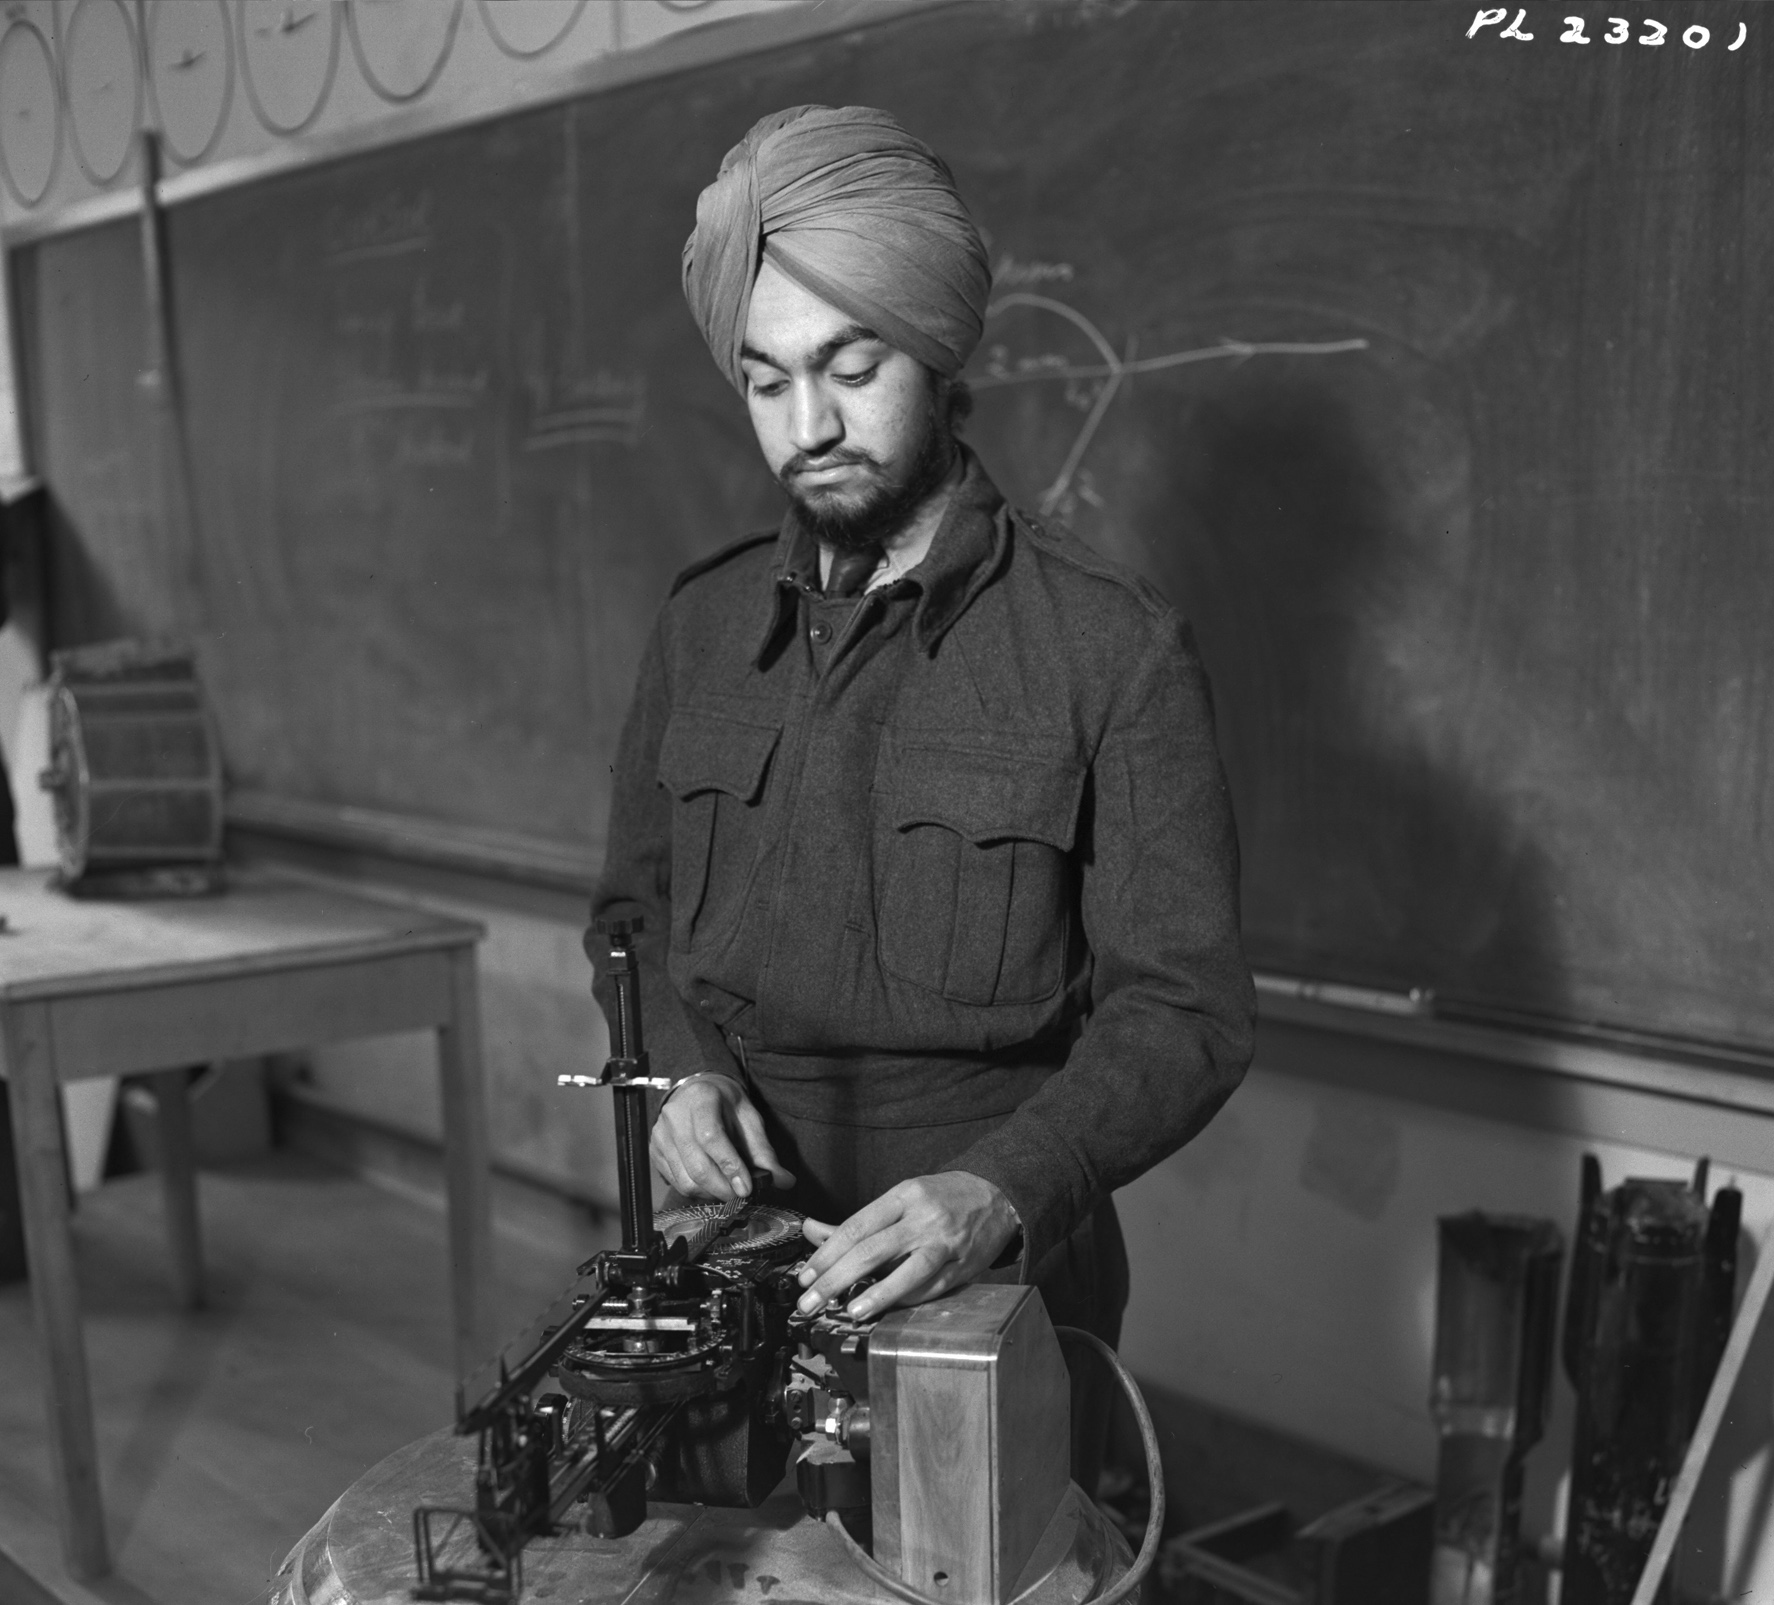 Leading Aircraftman Rajinder Singh Sandhu, from Pakho Pur, India, examines the mechanics of a bomb sight at No. 41 Service Flying Training School at RCAF Weyburn, Saskatchewan. PHOTO: DND Archives, PL-23201